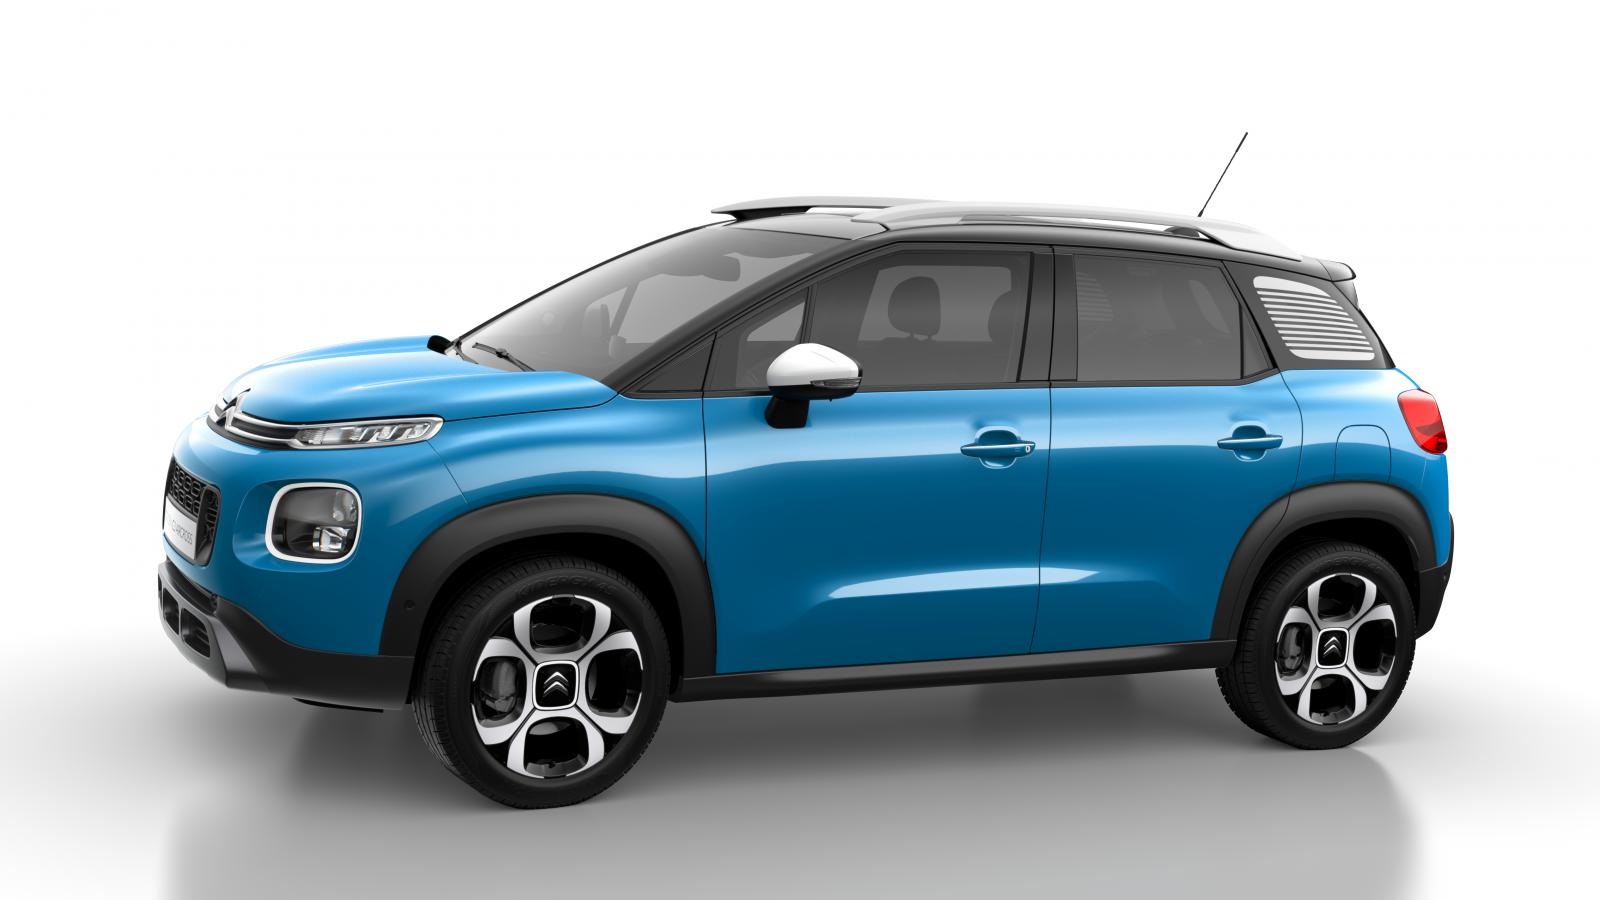 SUV Compact C3 Aircross - Breathing Blue